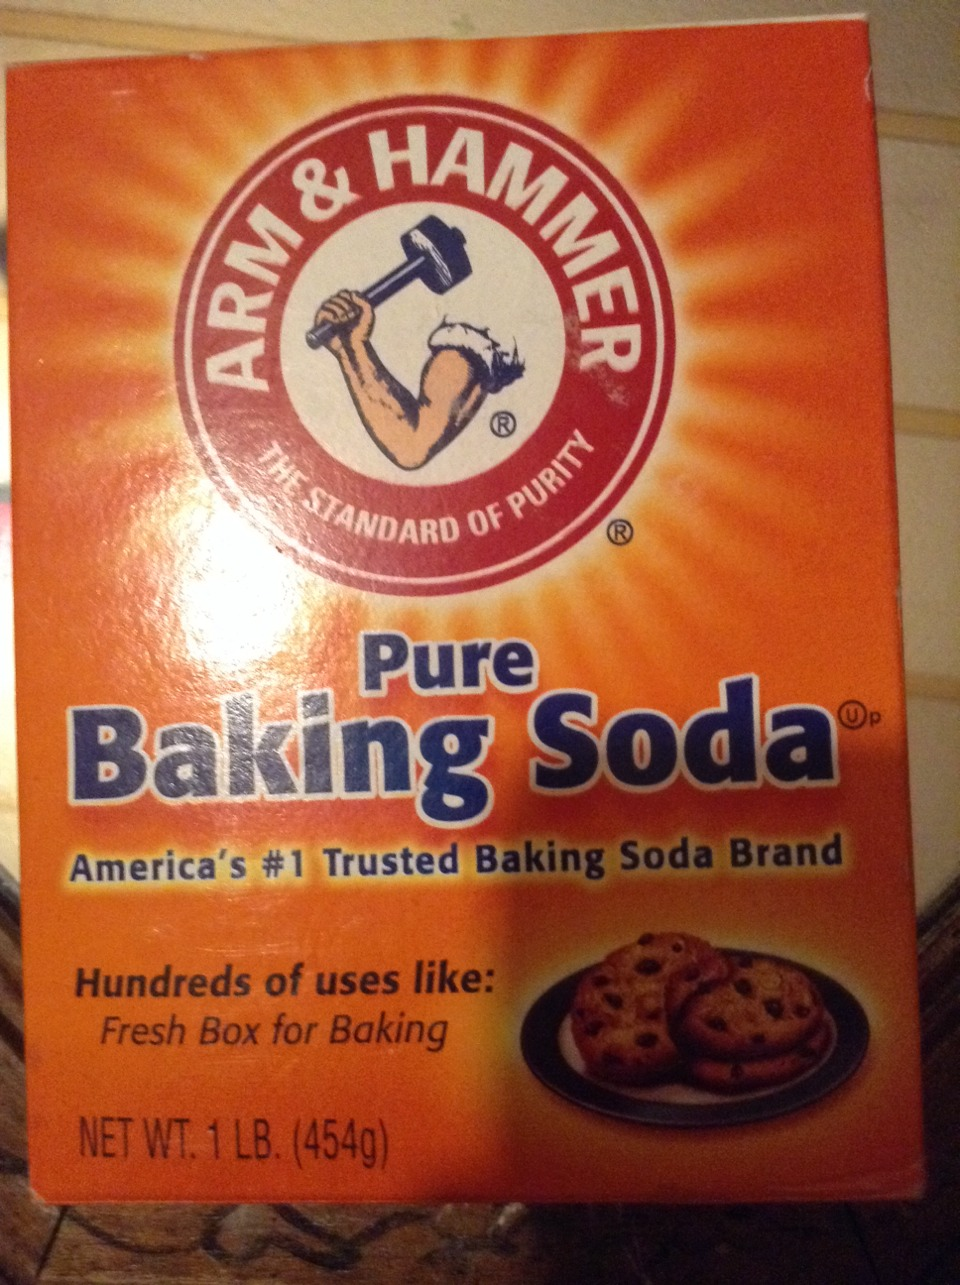 Take any baking soda and make a paste with water!